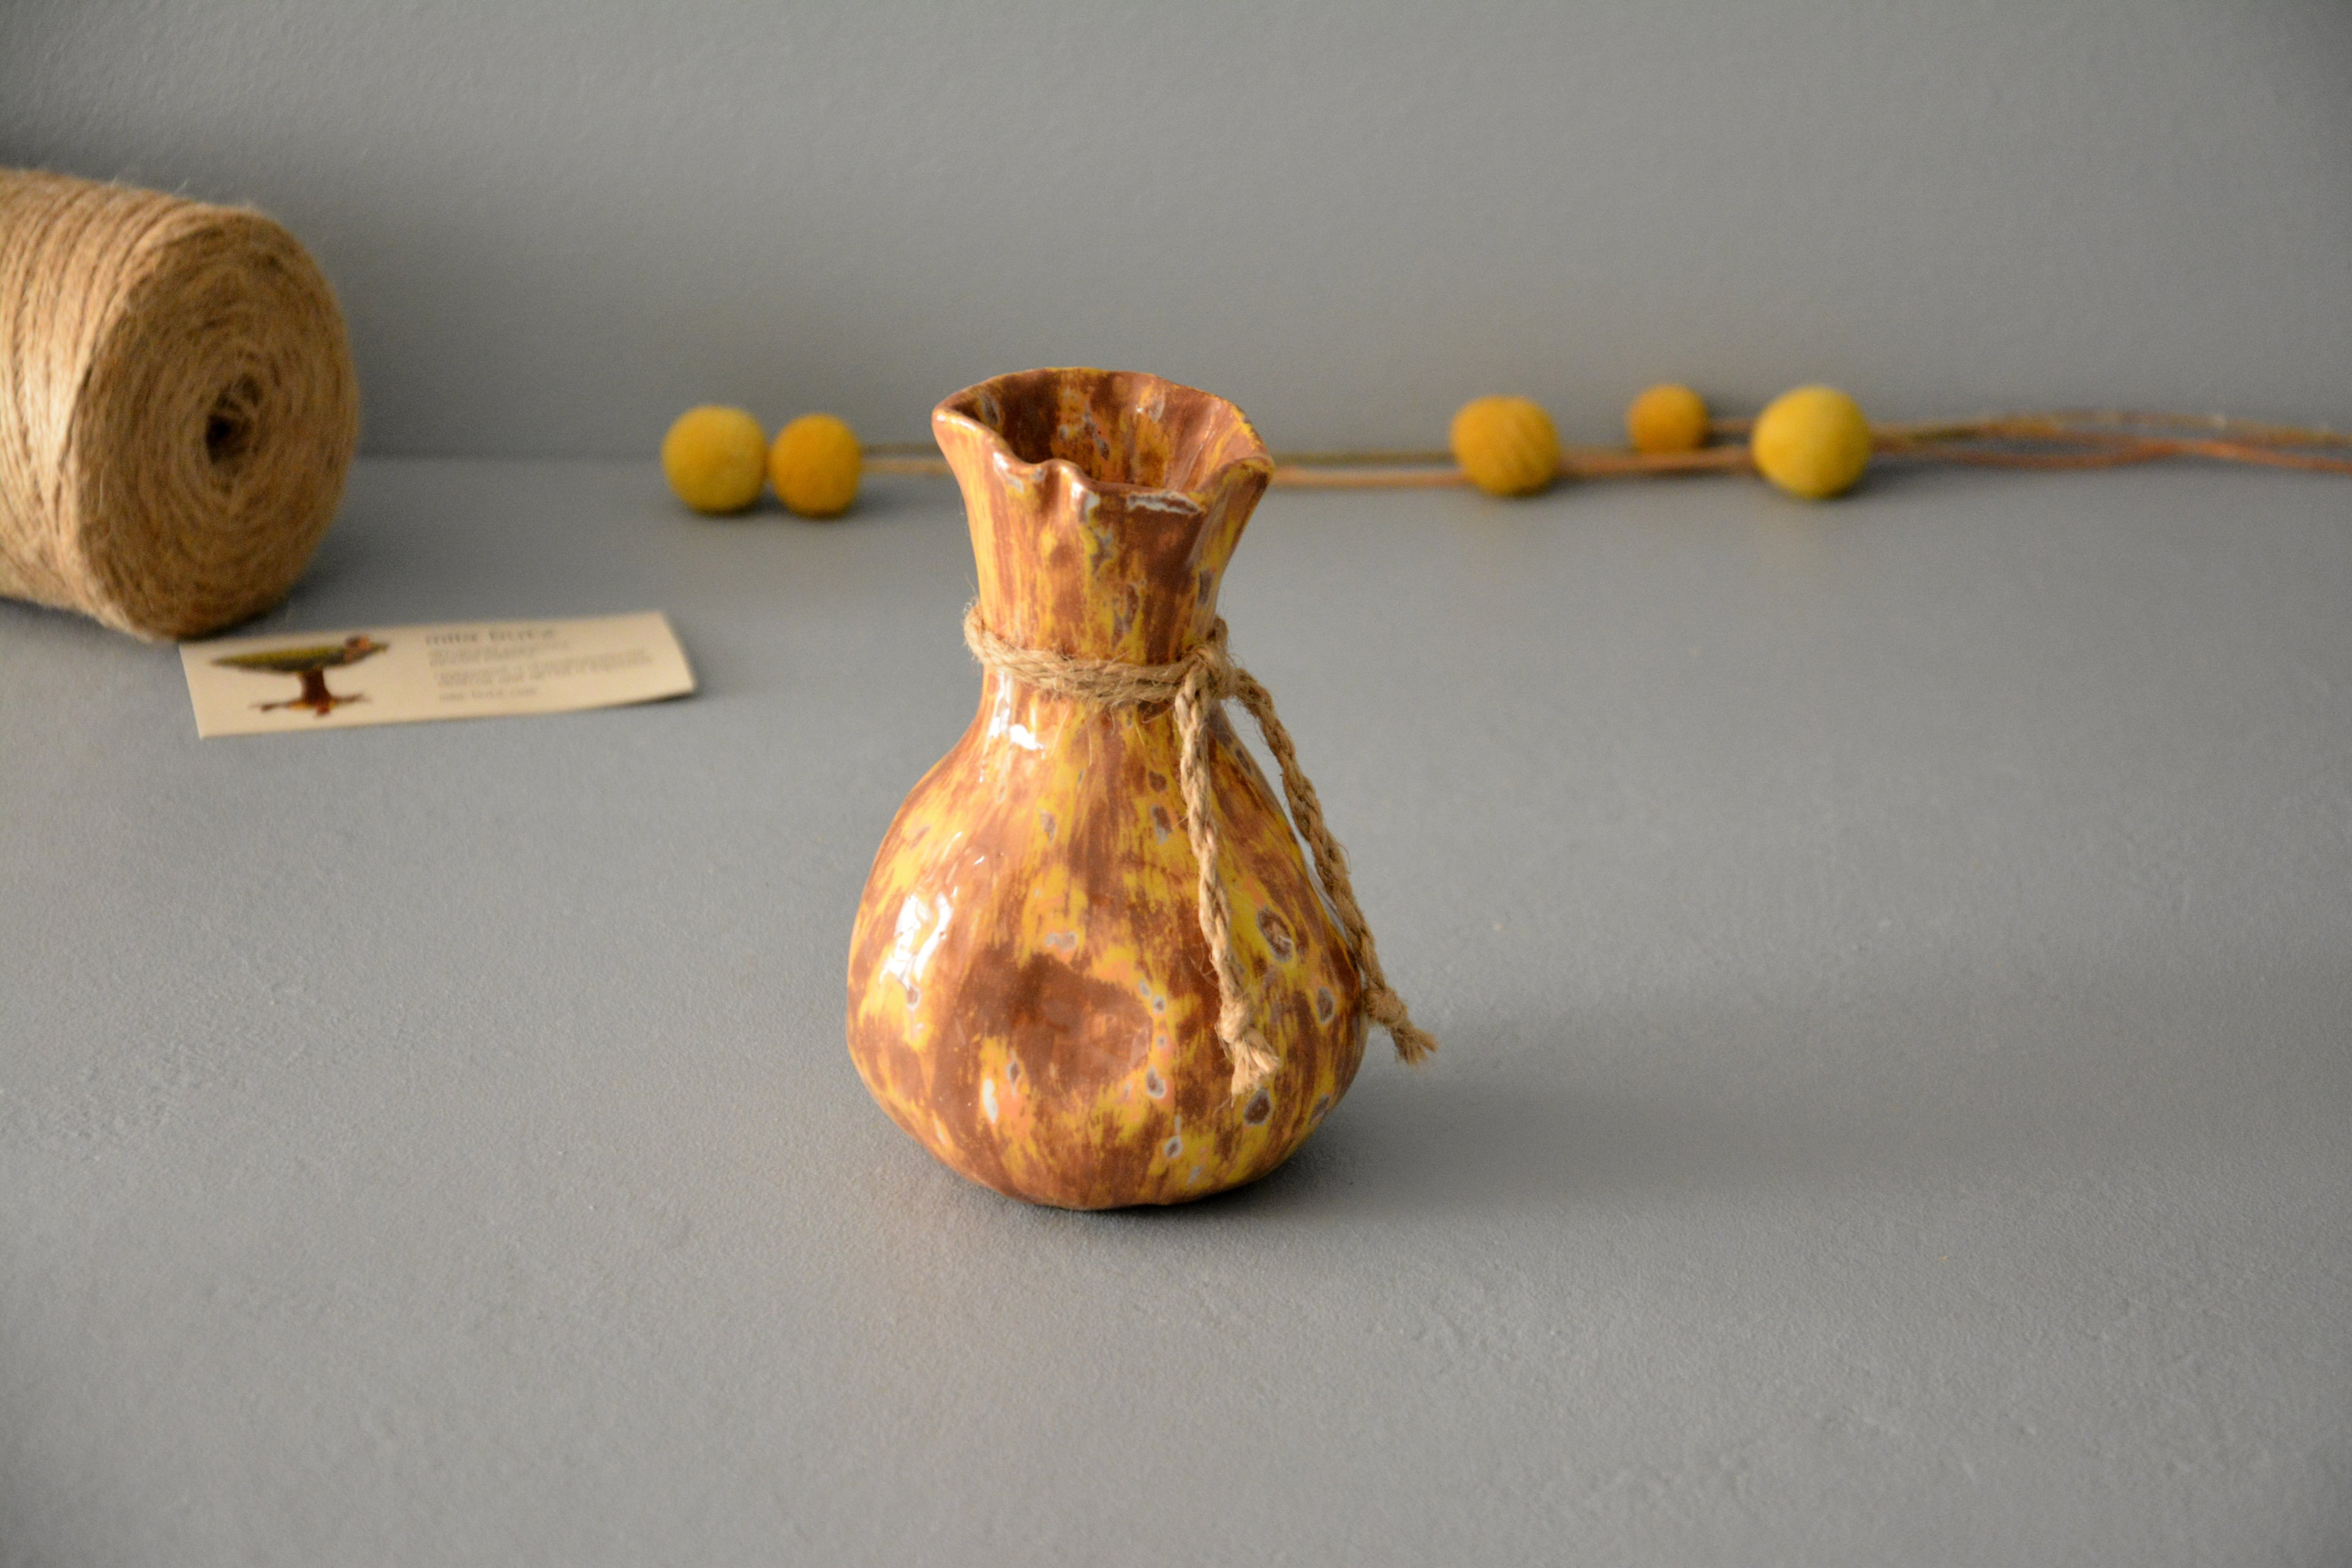 Ceramic small vase candlestick yellow-brown bagful, height - 13 cm, photo 6 of 8. 1197.